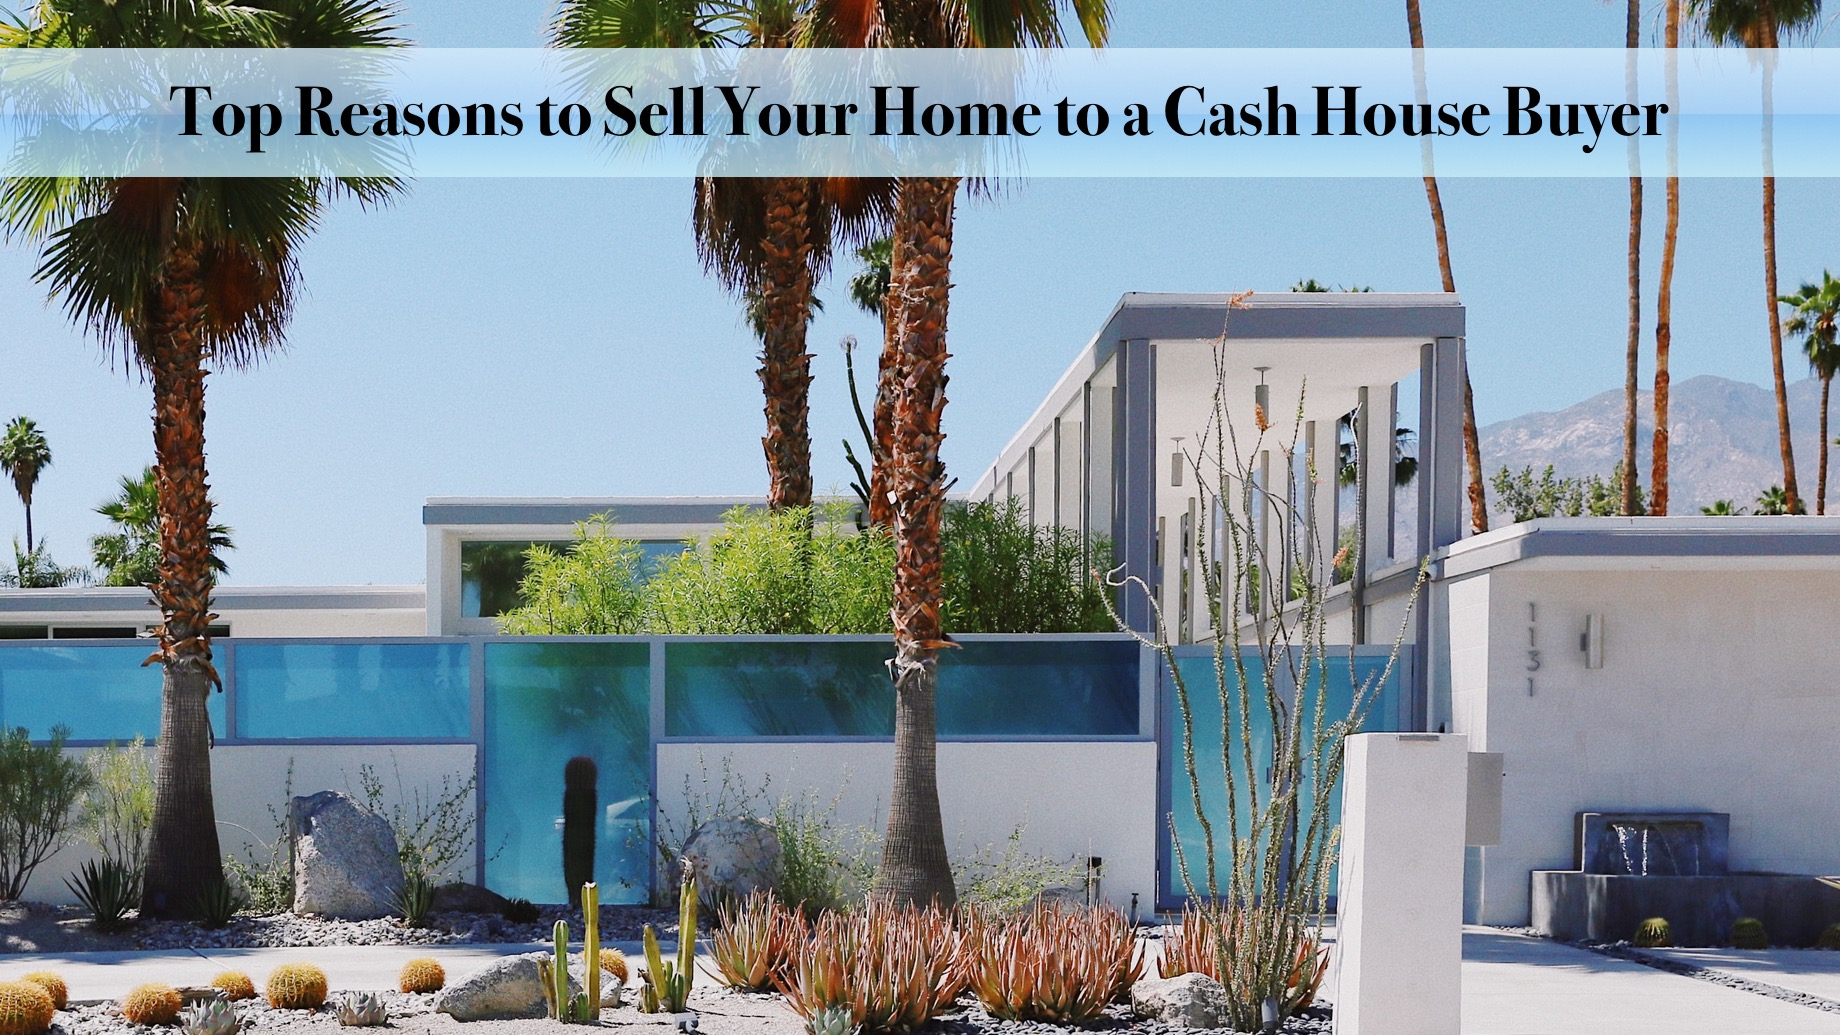 Top Reasons to Sell Your Home to a Cash House Buyer